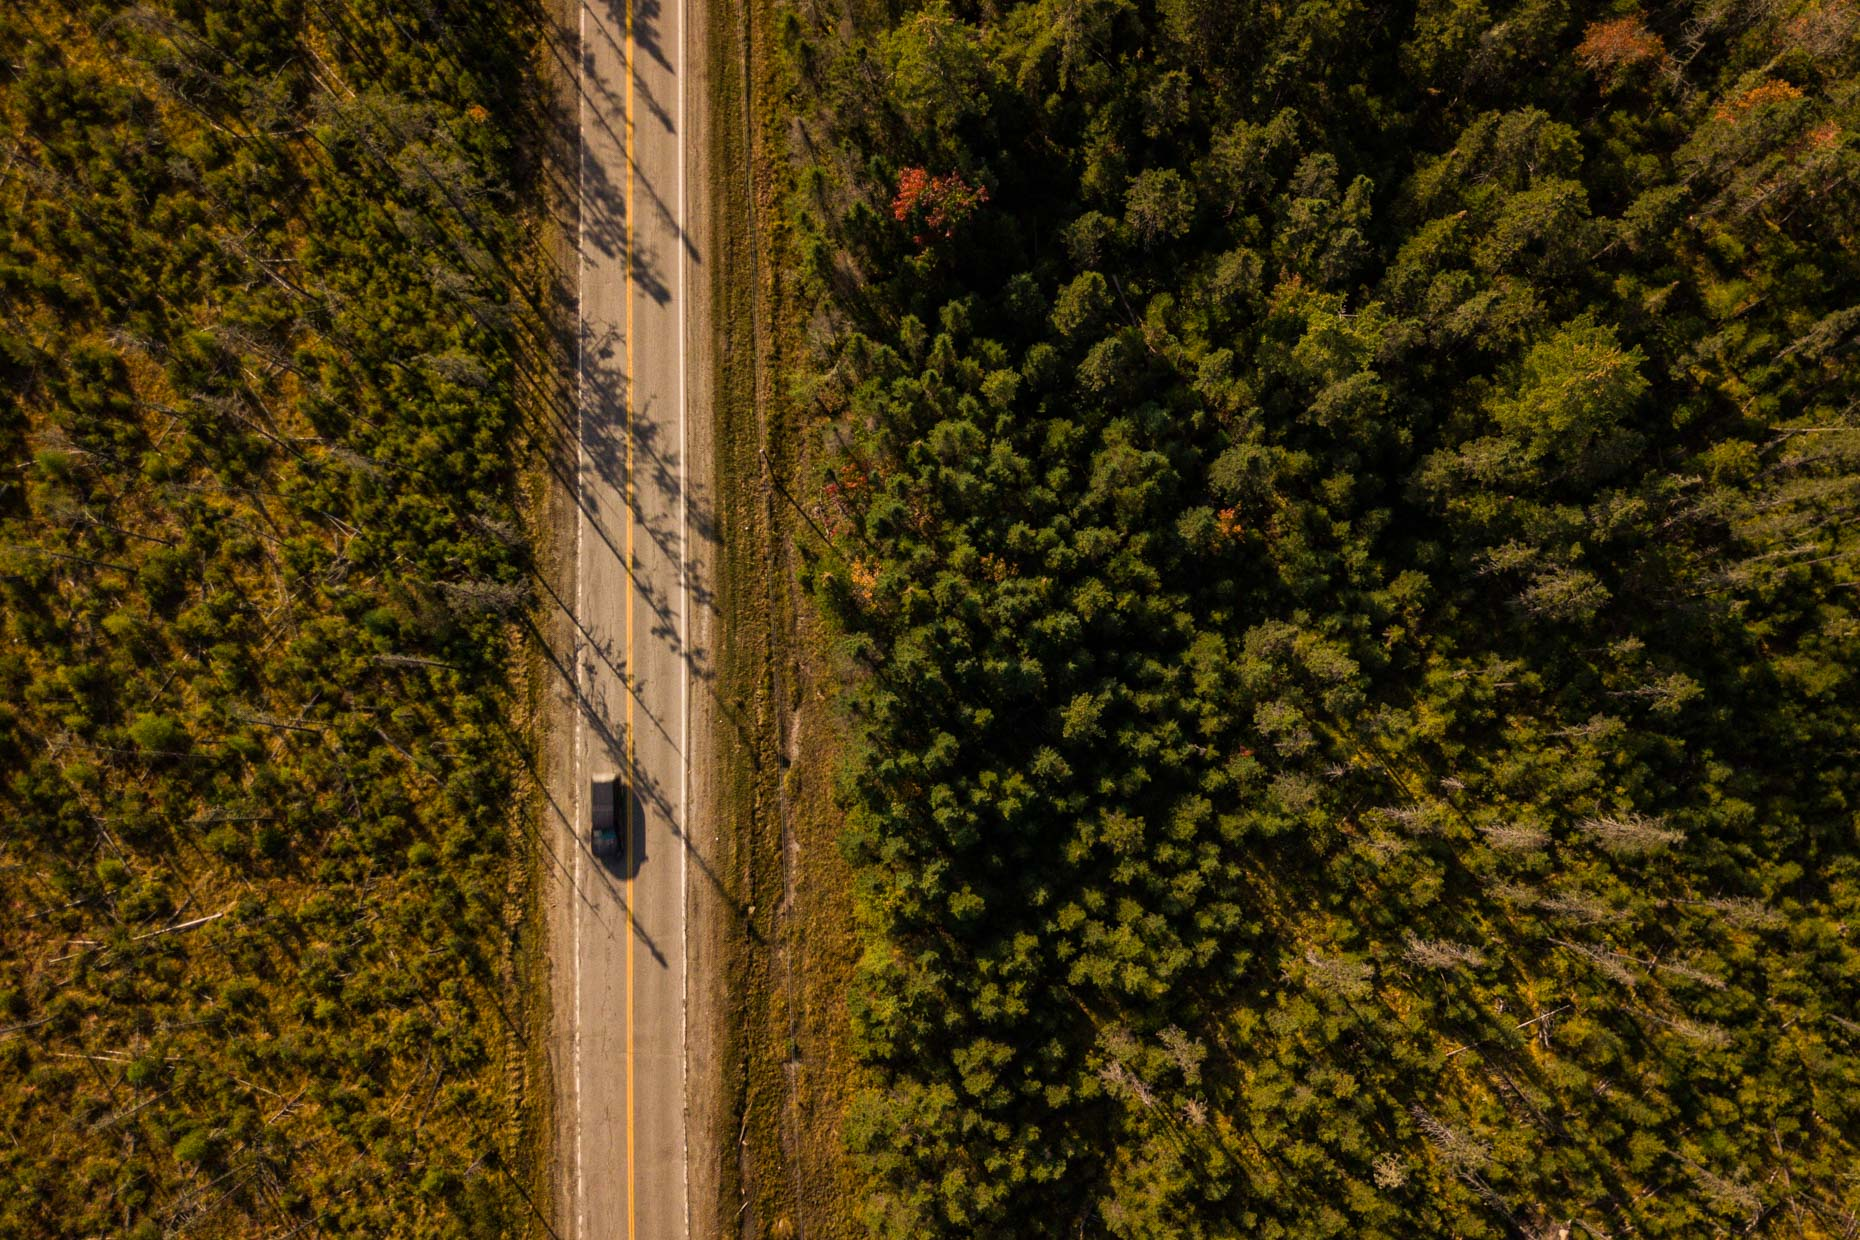 Aerial photograph of a truck on a road